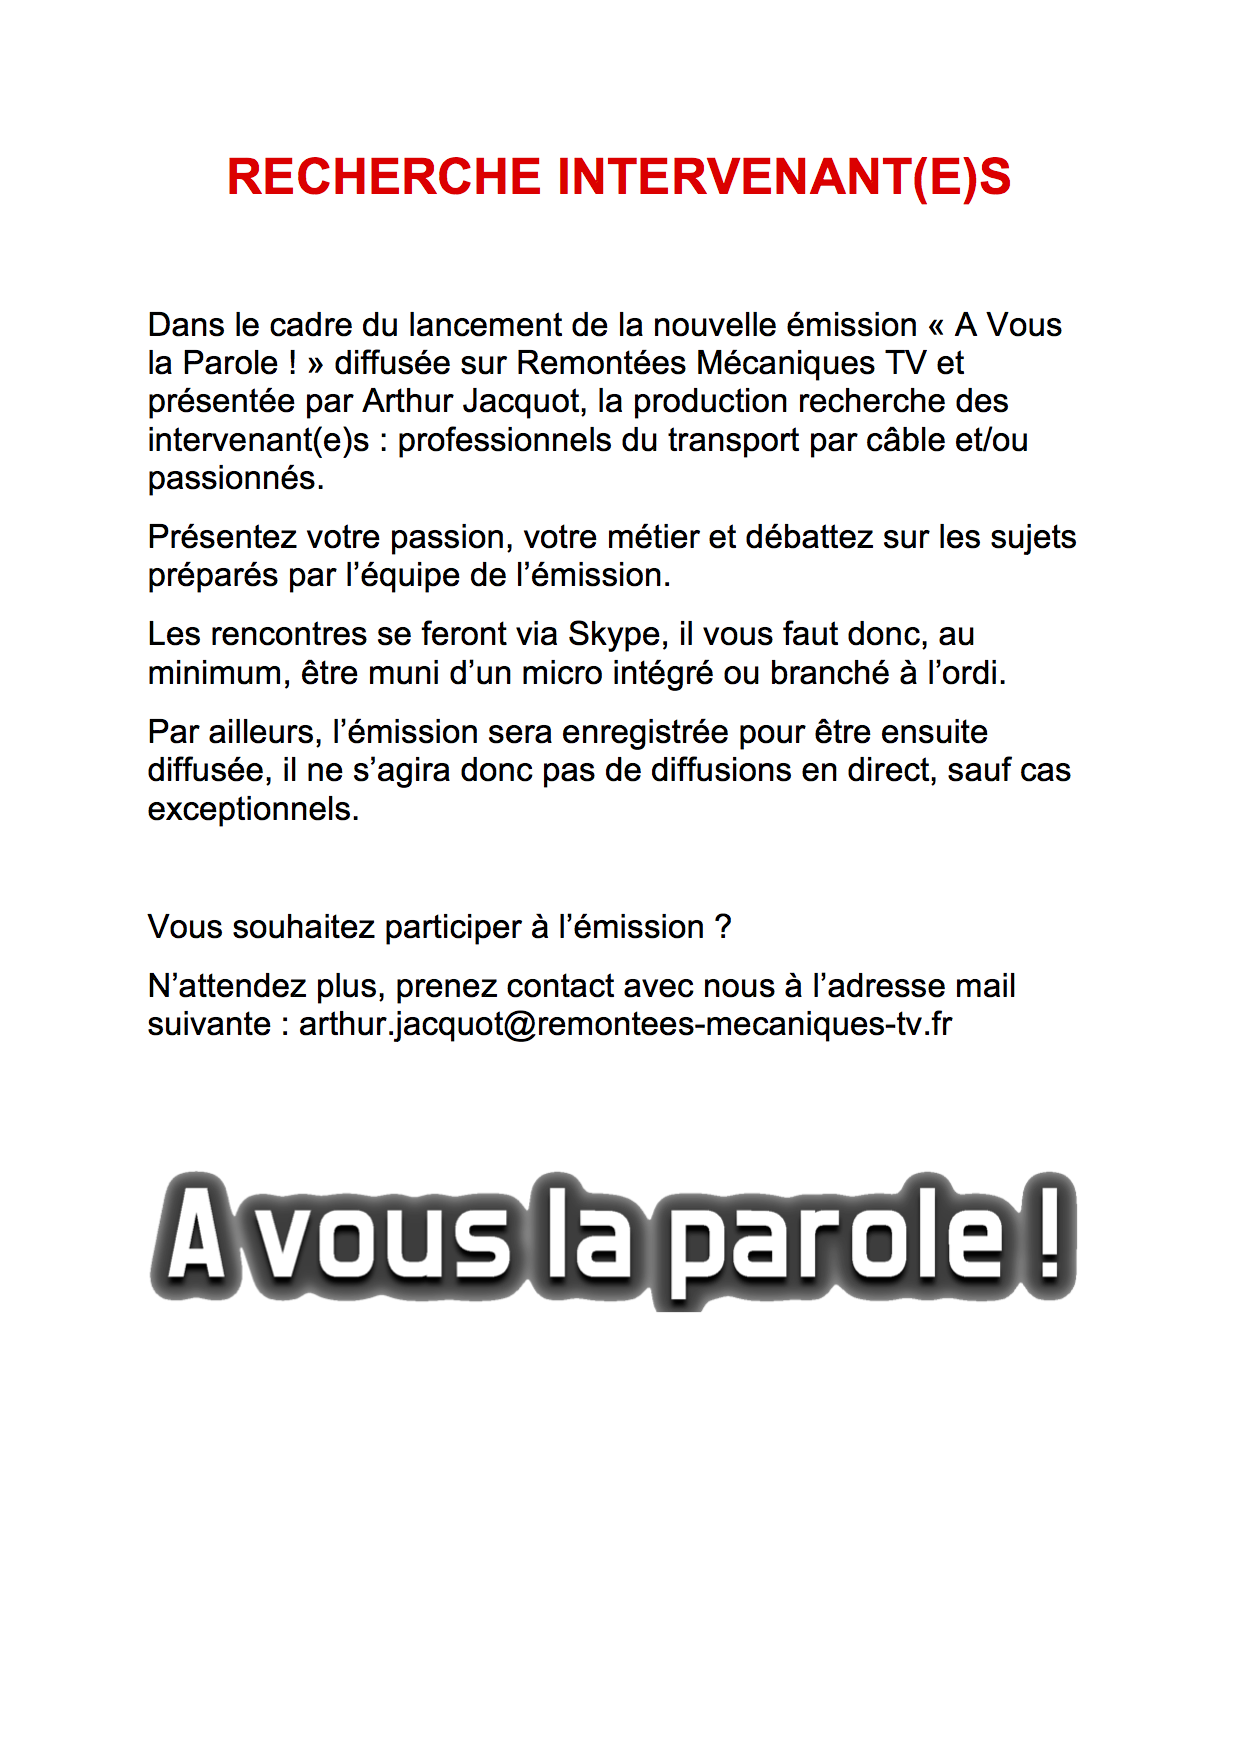 Participez à l'émission